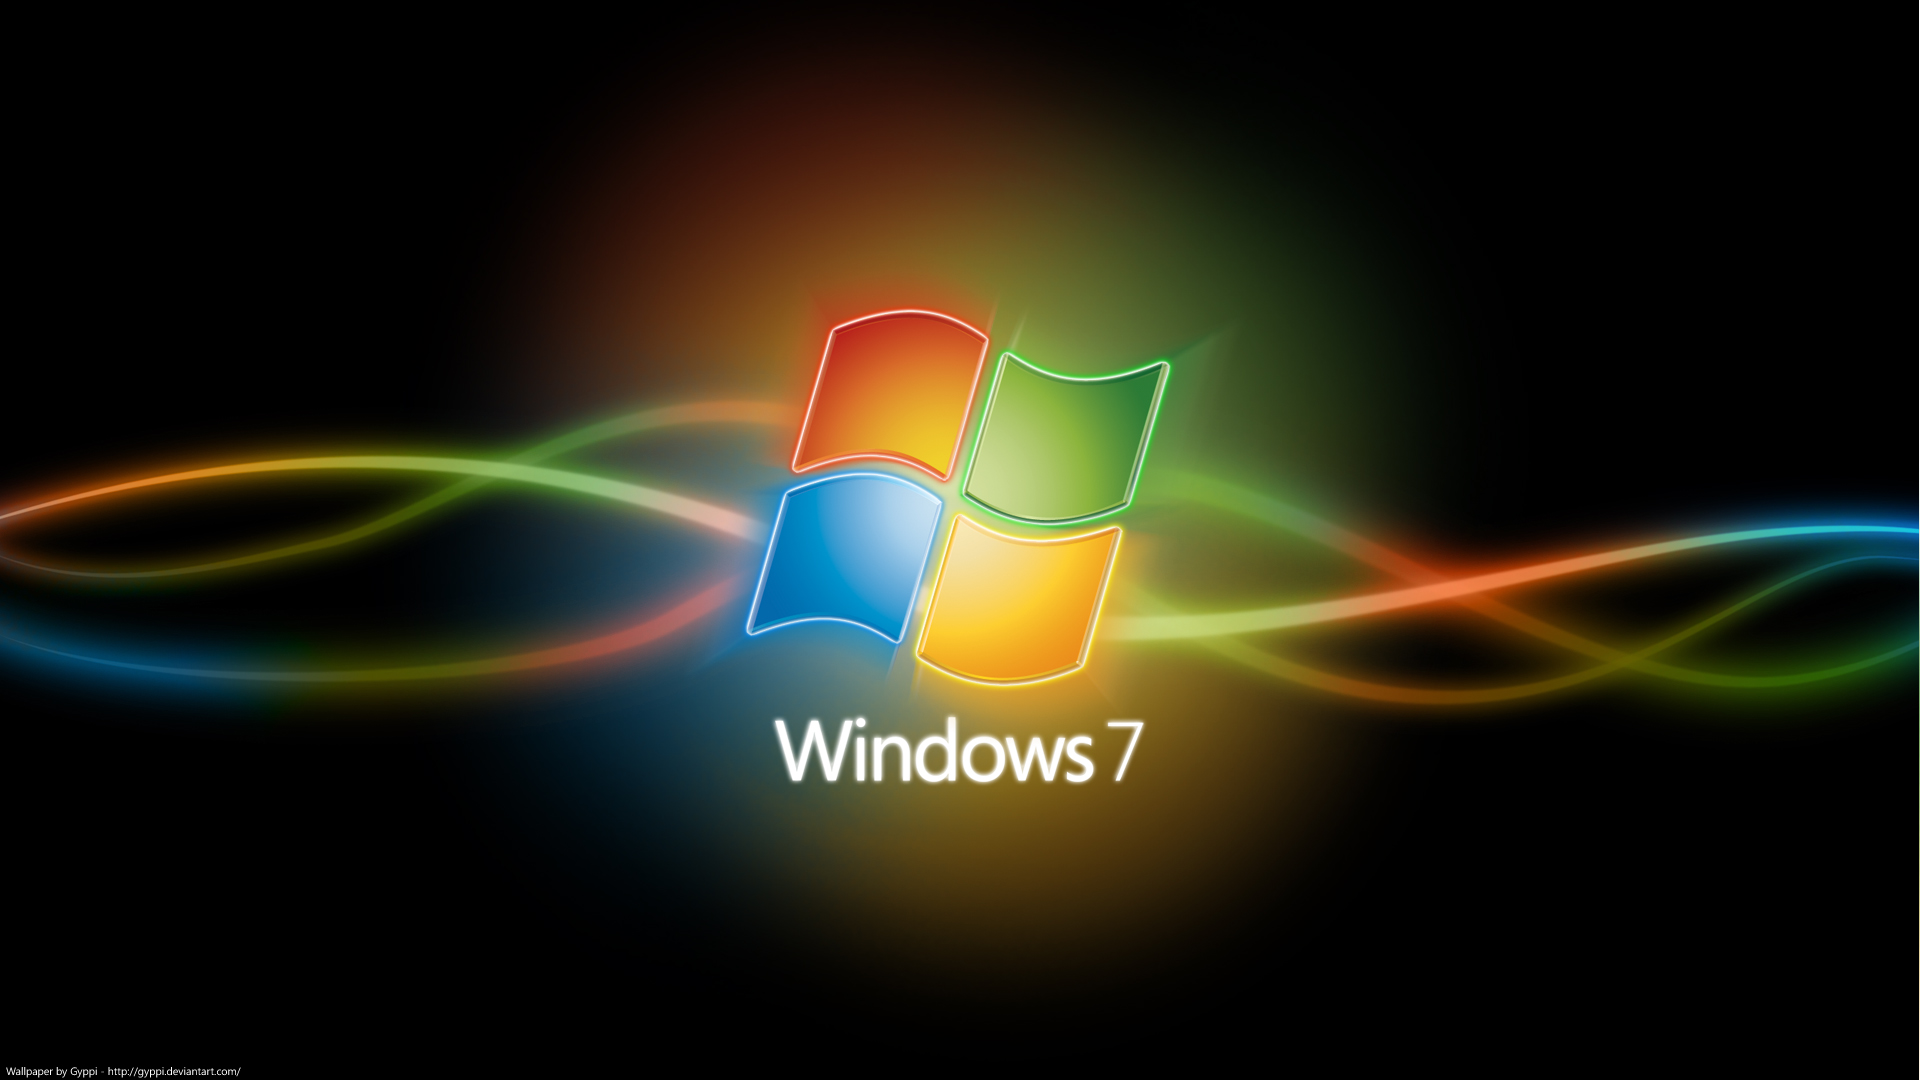 15 Amazing Windows 7 HD Wallpapers